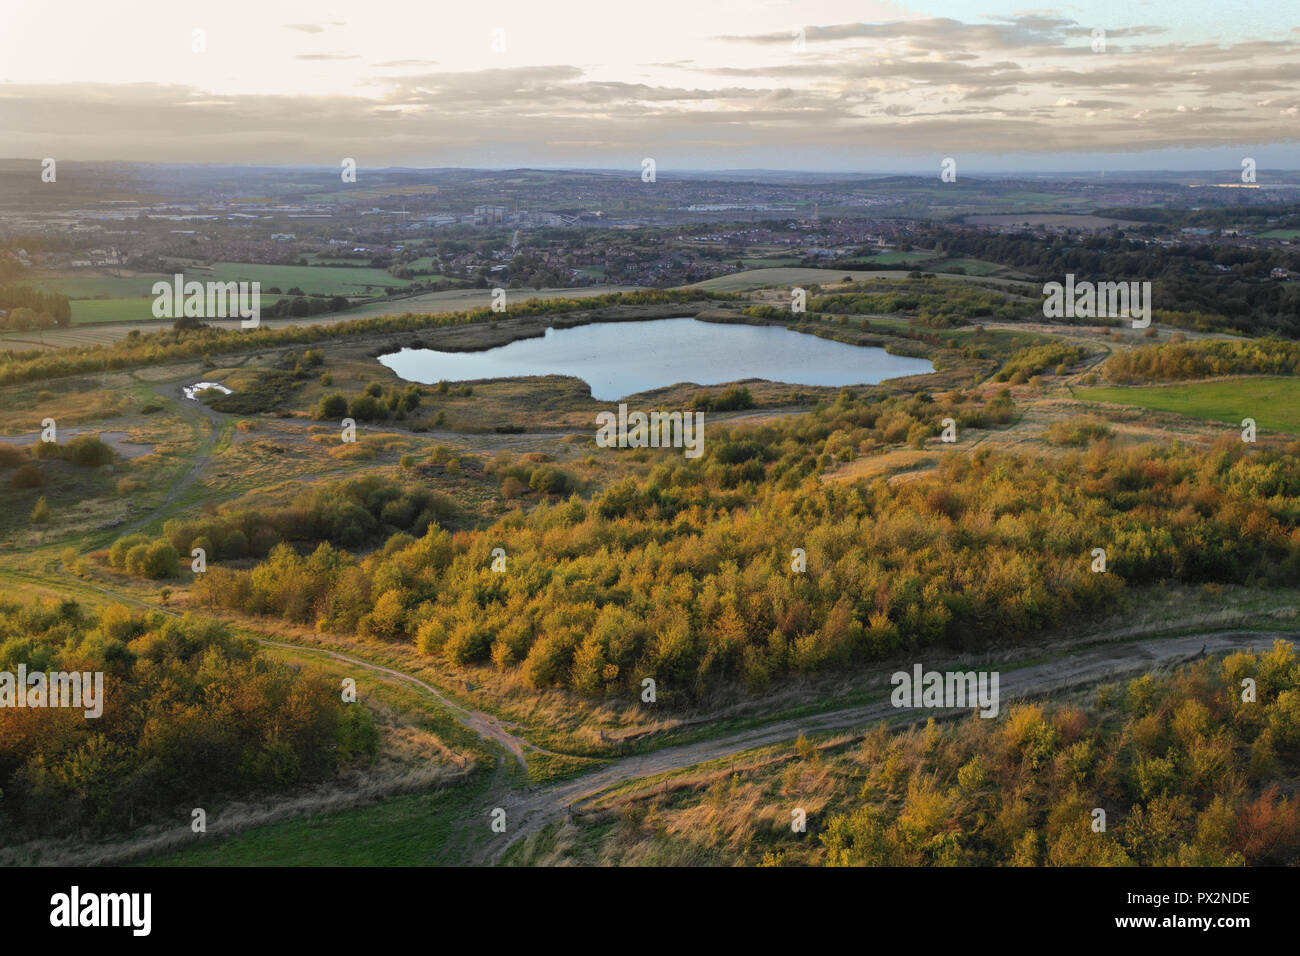 Drone aerial of flanderwell rotherham, south yorkshire UK, and small natural lake formed by water drainage. - Stock Image